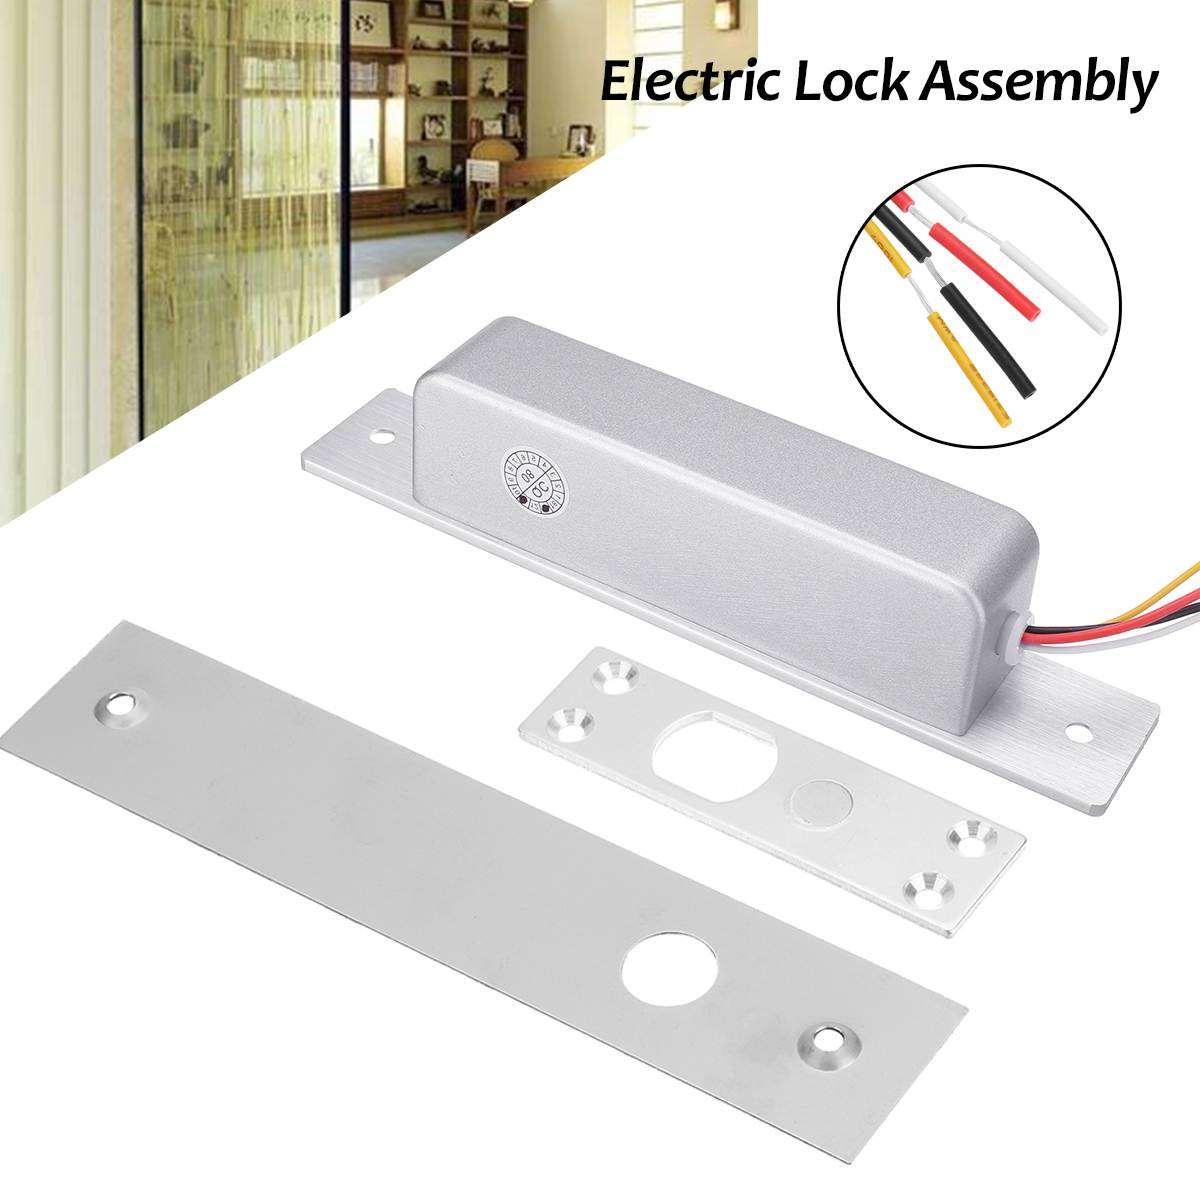 DC 12/24V 4 Wire Electric Lock Assembly Solenoid Magnetic Bolt 0/3/6s Time Delay for Access Control Home SafetyDC 12/24V 4 Wire Electric Lock Assembly Solenoid Magnetic Bolt 0/3/6s Time Delay for Access Control Home Safety